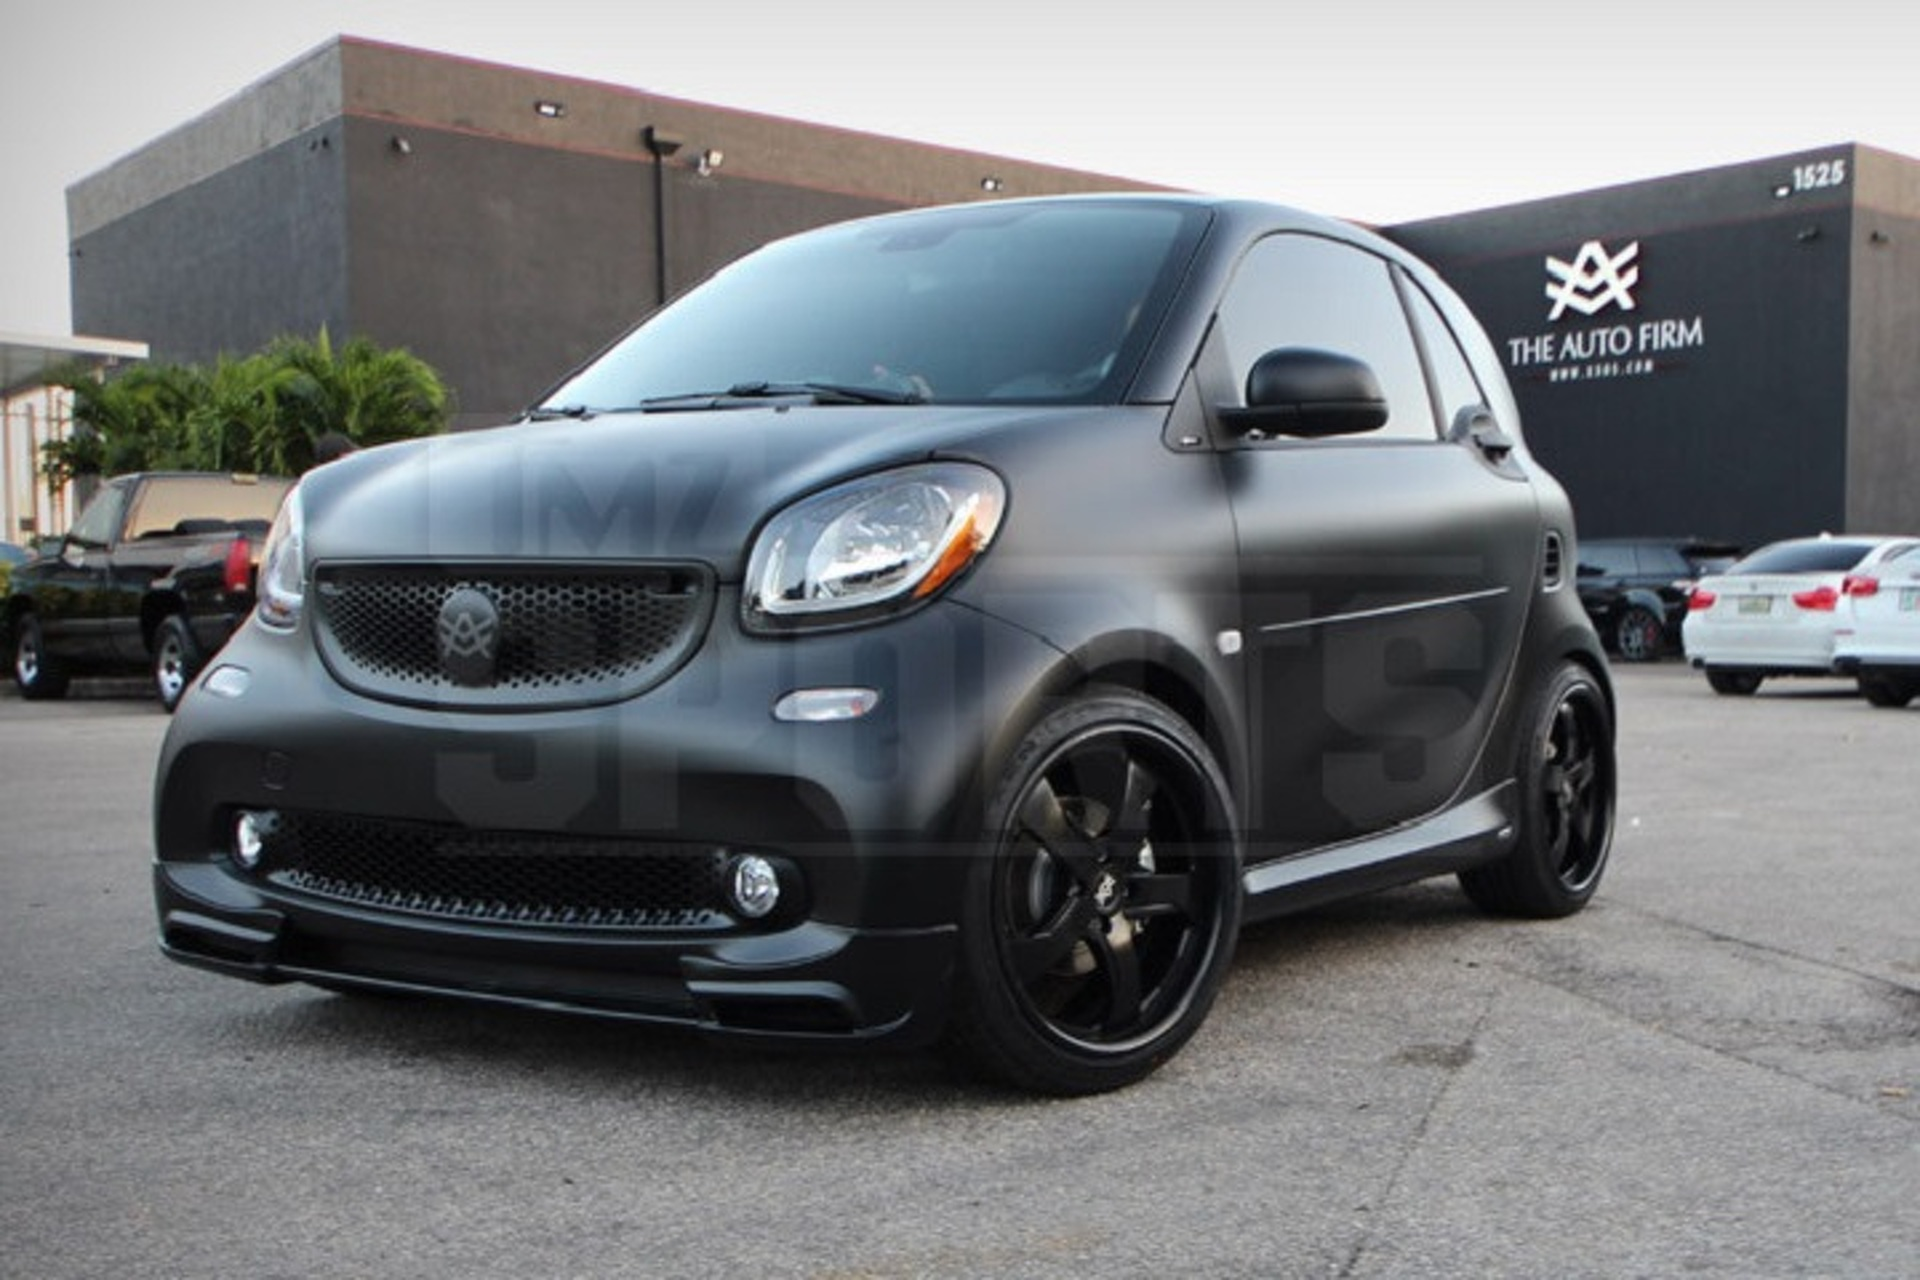 Photo of Chad Johnson Smart Car - car